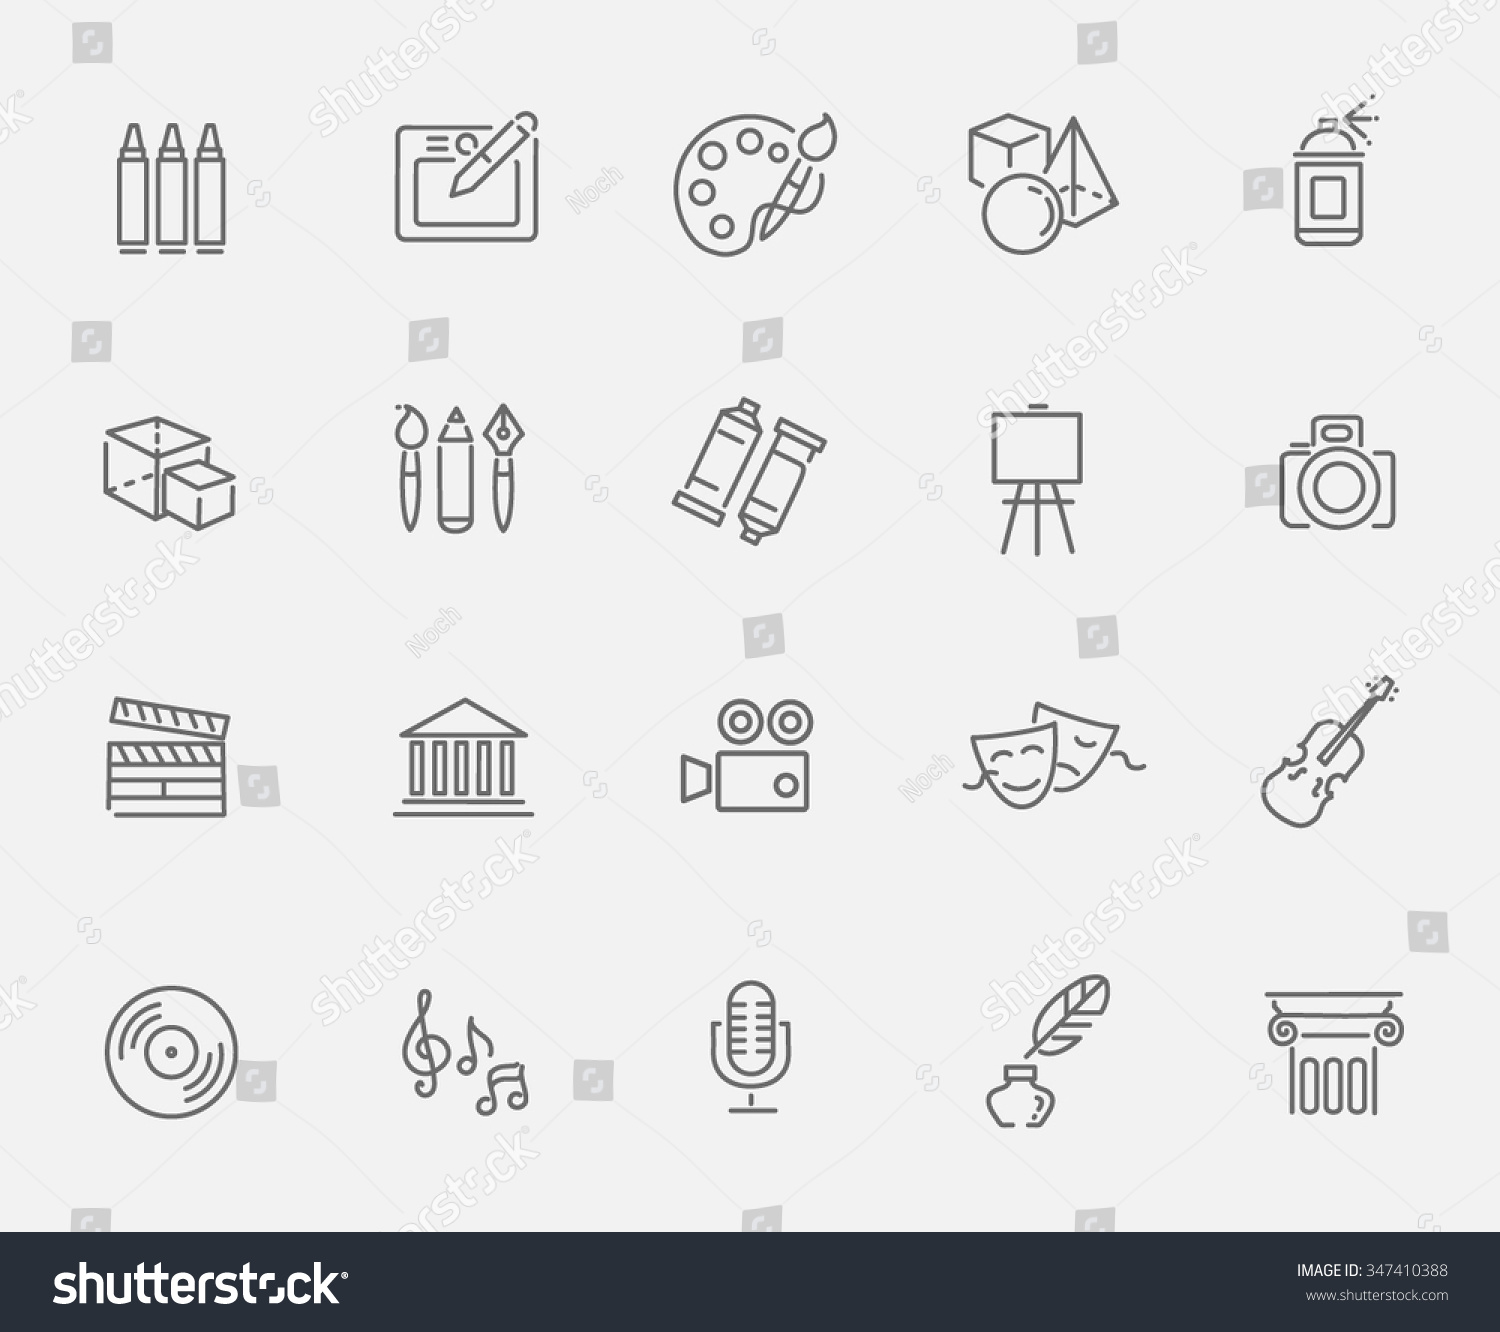 Line Art Icons : Line art icon stock vector shutterstock